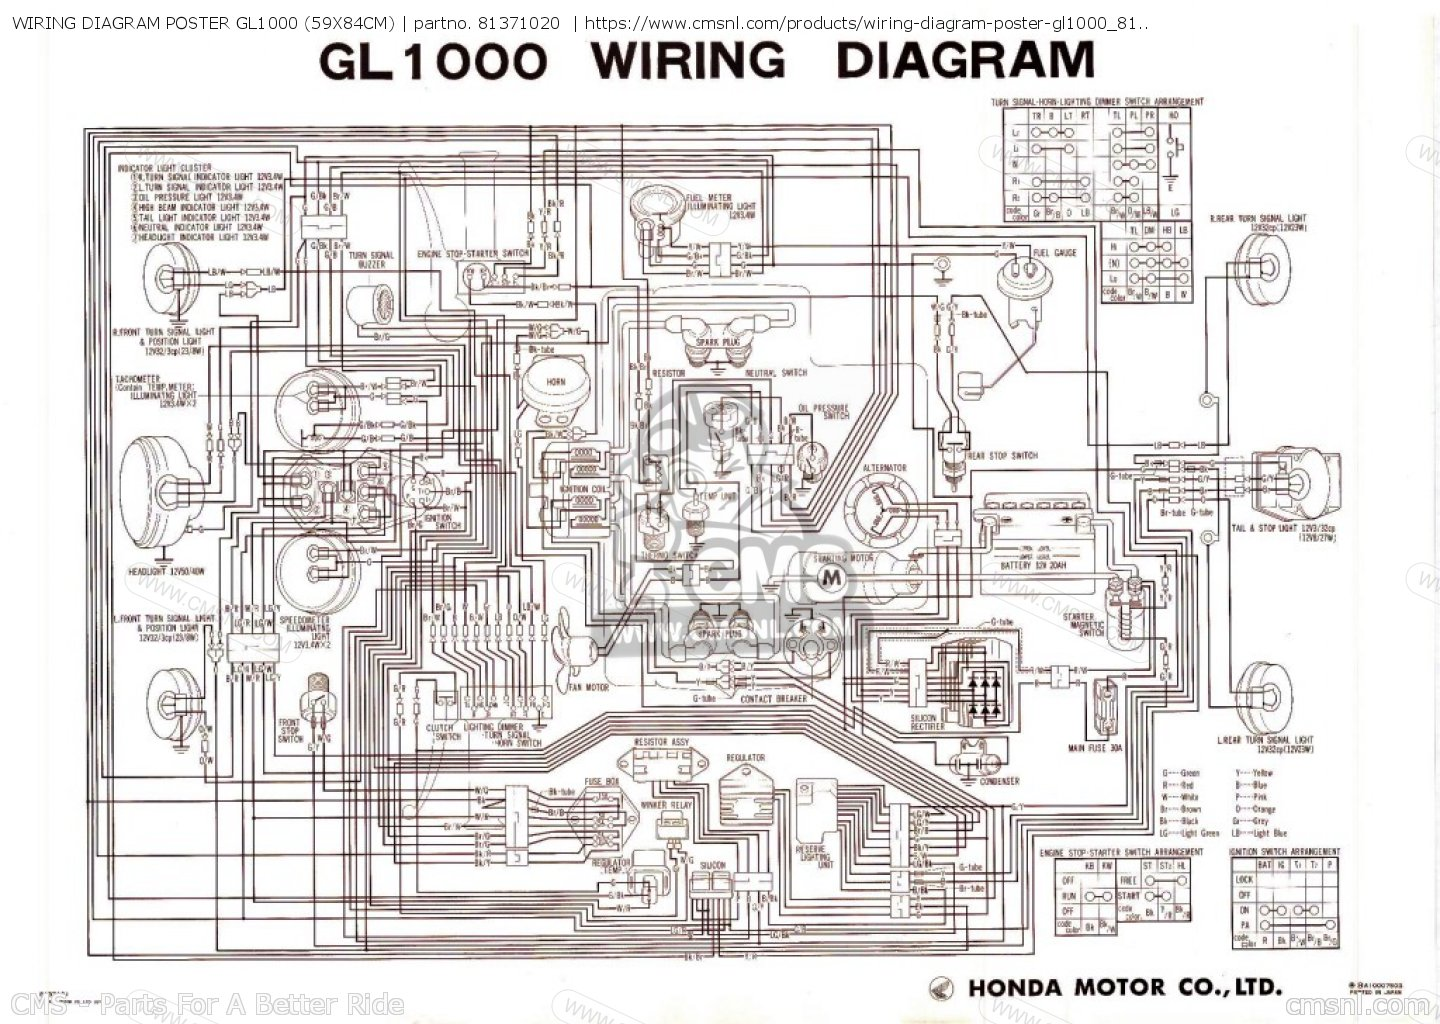 Cb350f Wiring Diagram Schematic Diagrams 1972 Cb175 Search For Gl1100i Trusted